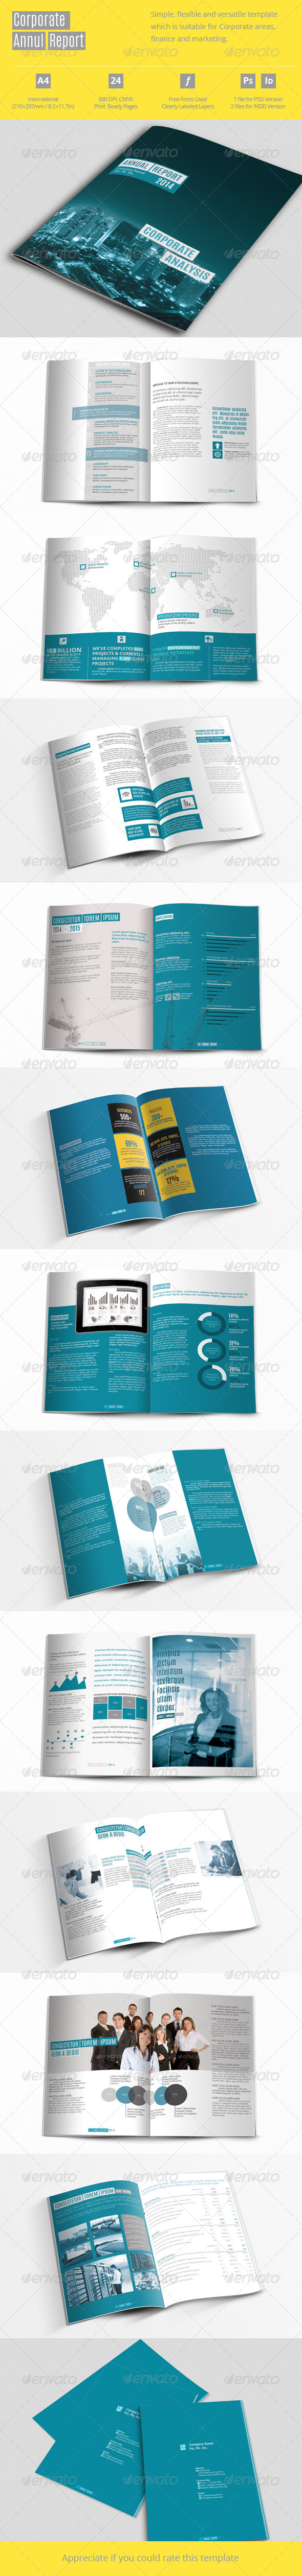 GraphicRiver Corporate Annual Report 7291016